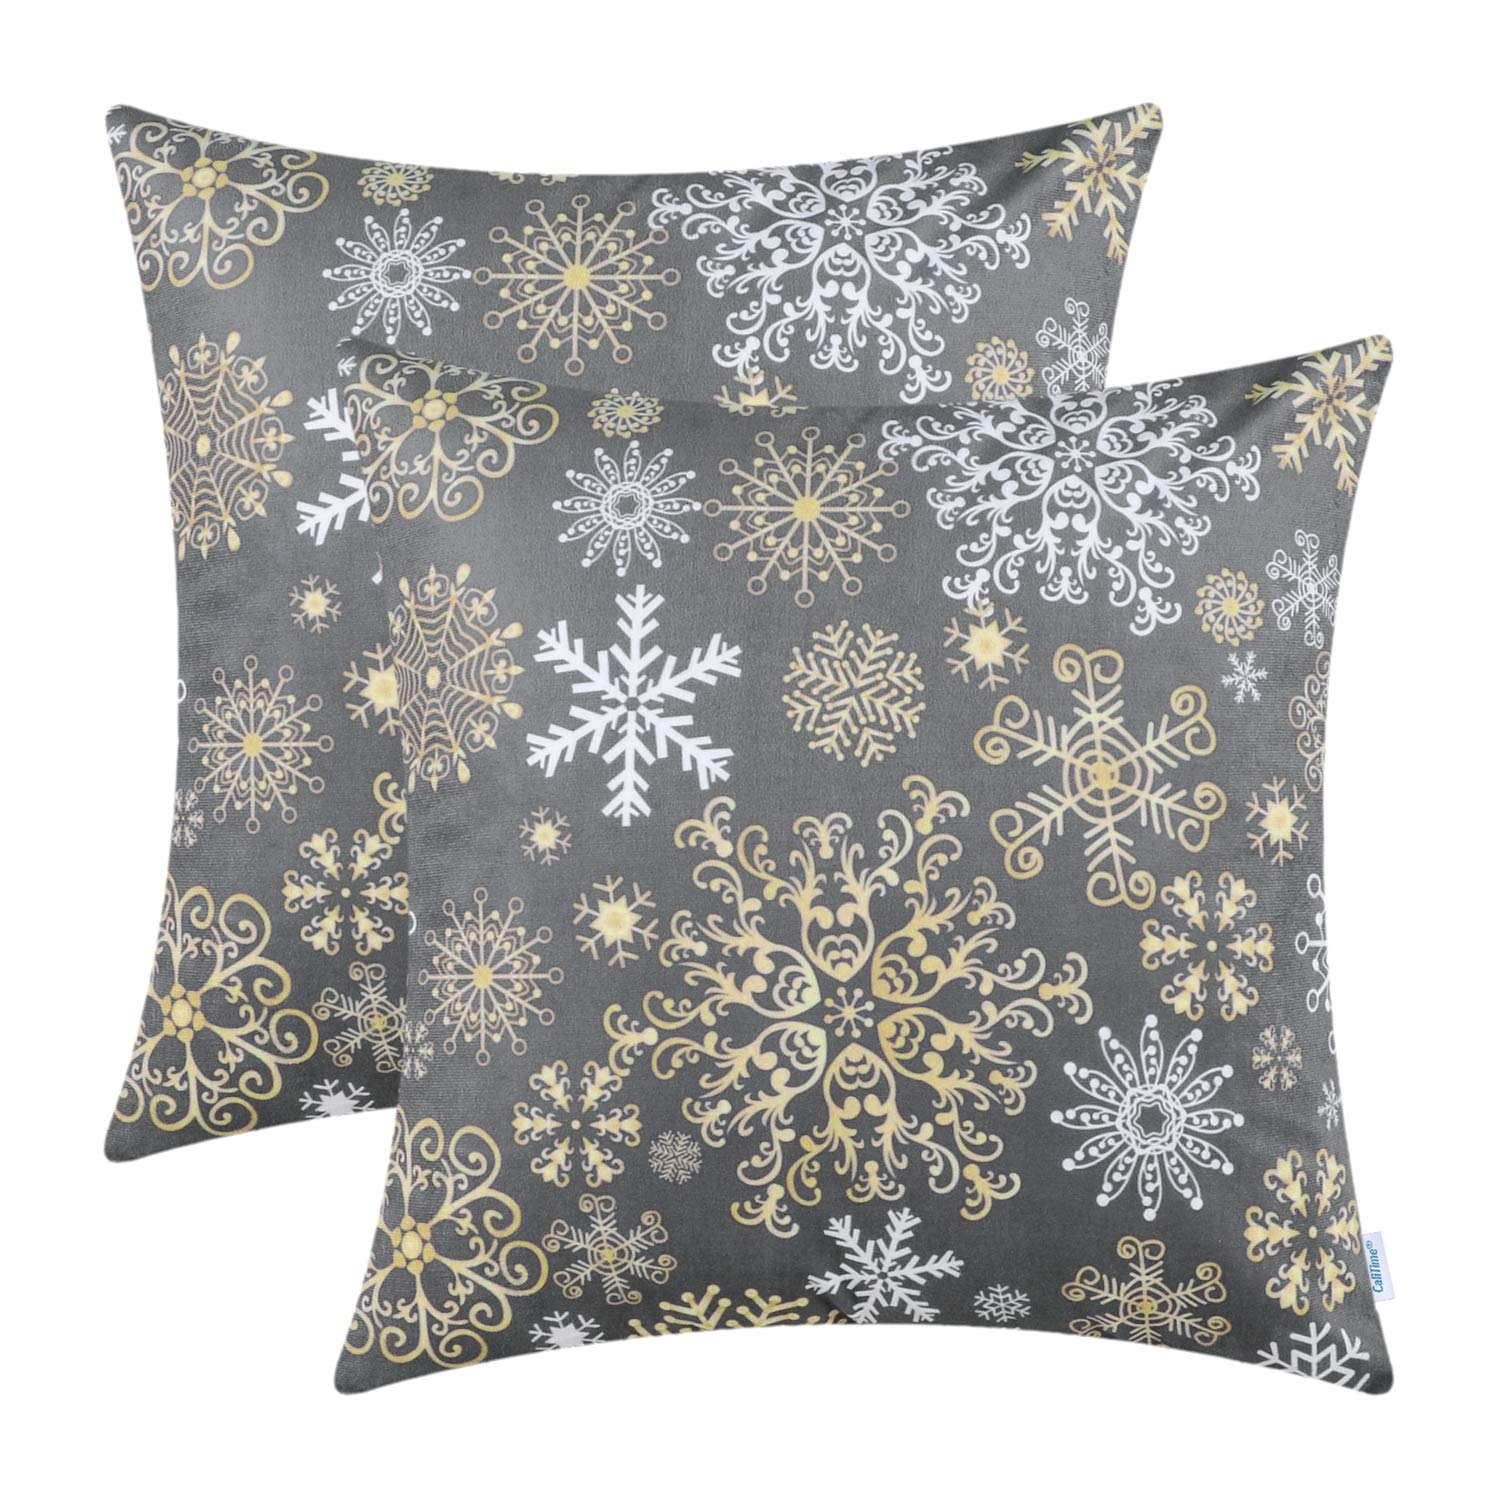 CaliTime Pack of 2 Cozy Fleece Throw Pillow Cases Covers for Couch Bed Sofa Christmas Snowflakes Both Sides 18 X 18 Inches Medium Grey